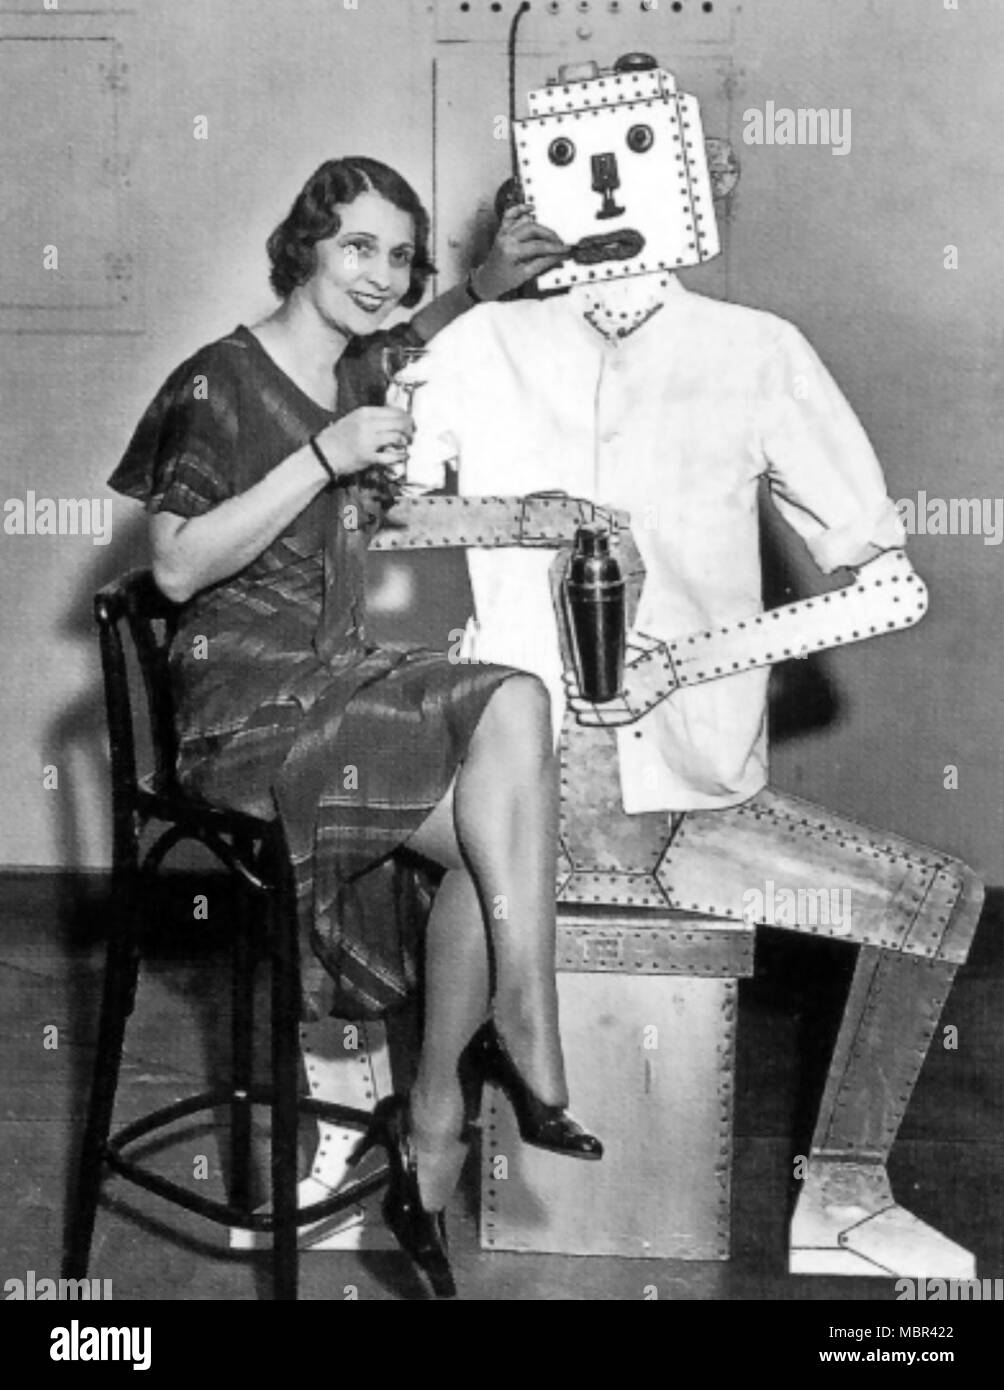 ROBOT BARMAN  An early 1930s impression of what robots might do. - Stock Image